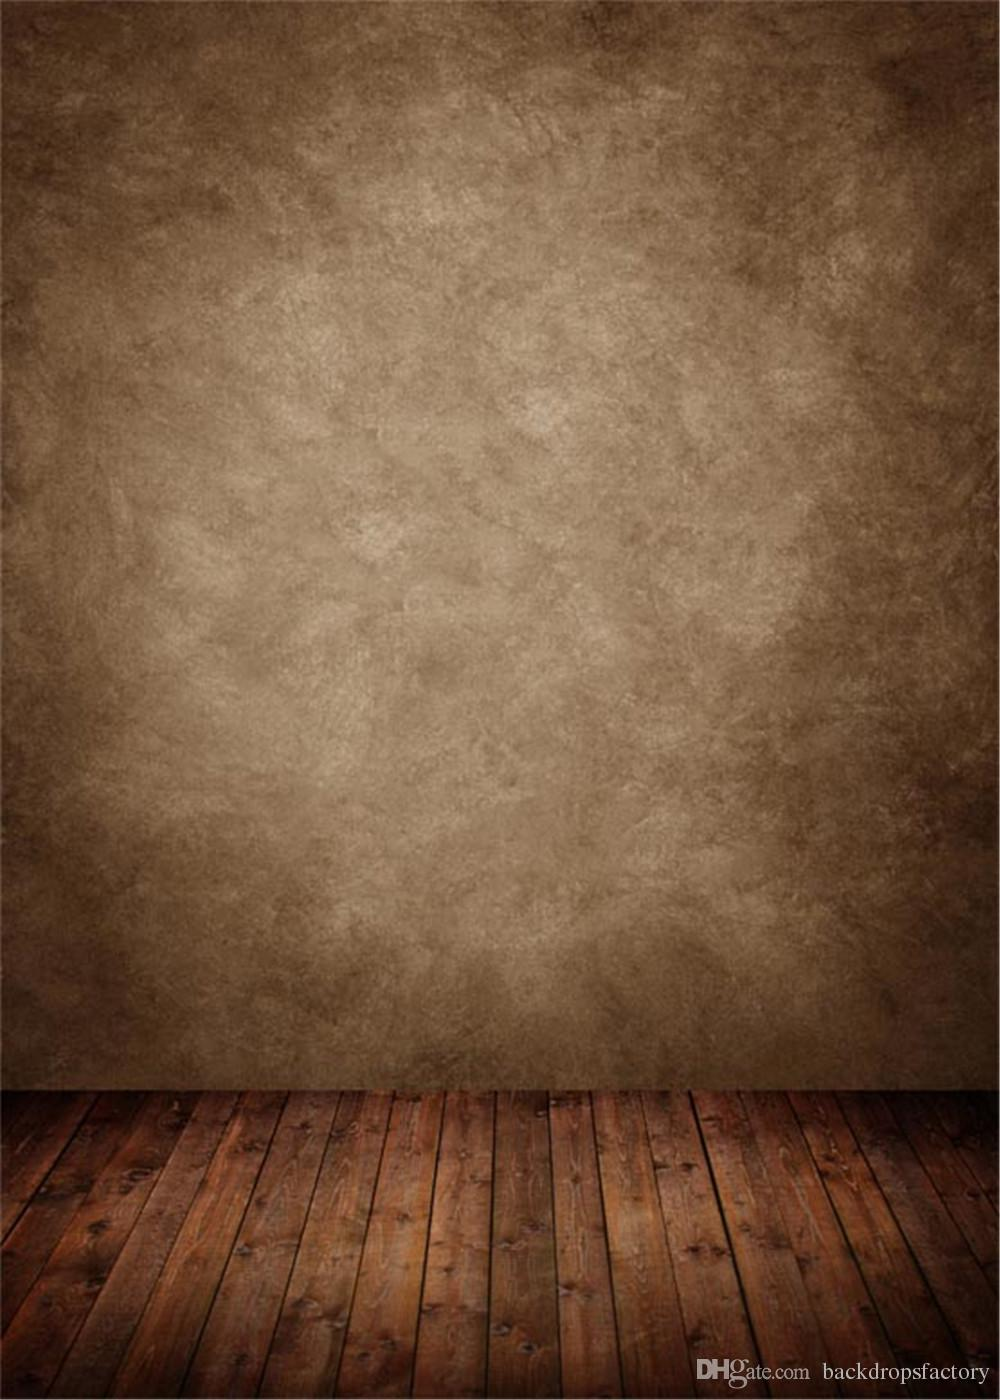 Vintage Brown Wall Photography Backdrop Dark Wooden Texture Floor Studio  Indoor Photo Shoot Backdrops Kids Children Photographic Background Vinyl  Backdrops ...